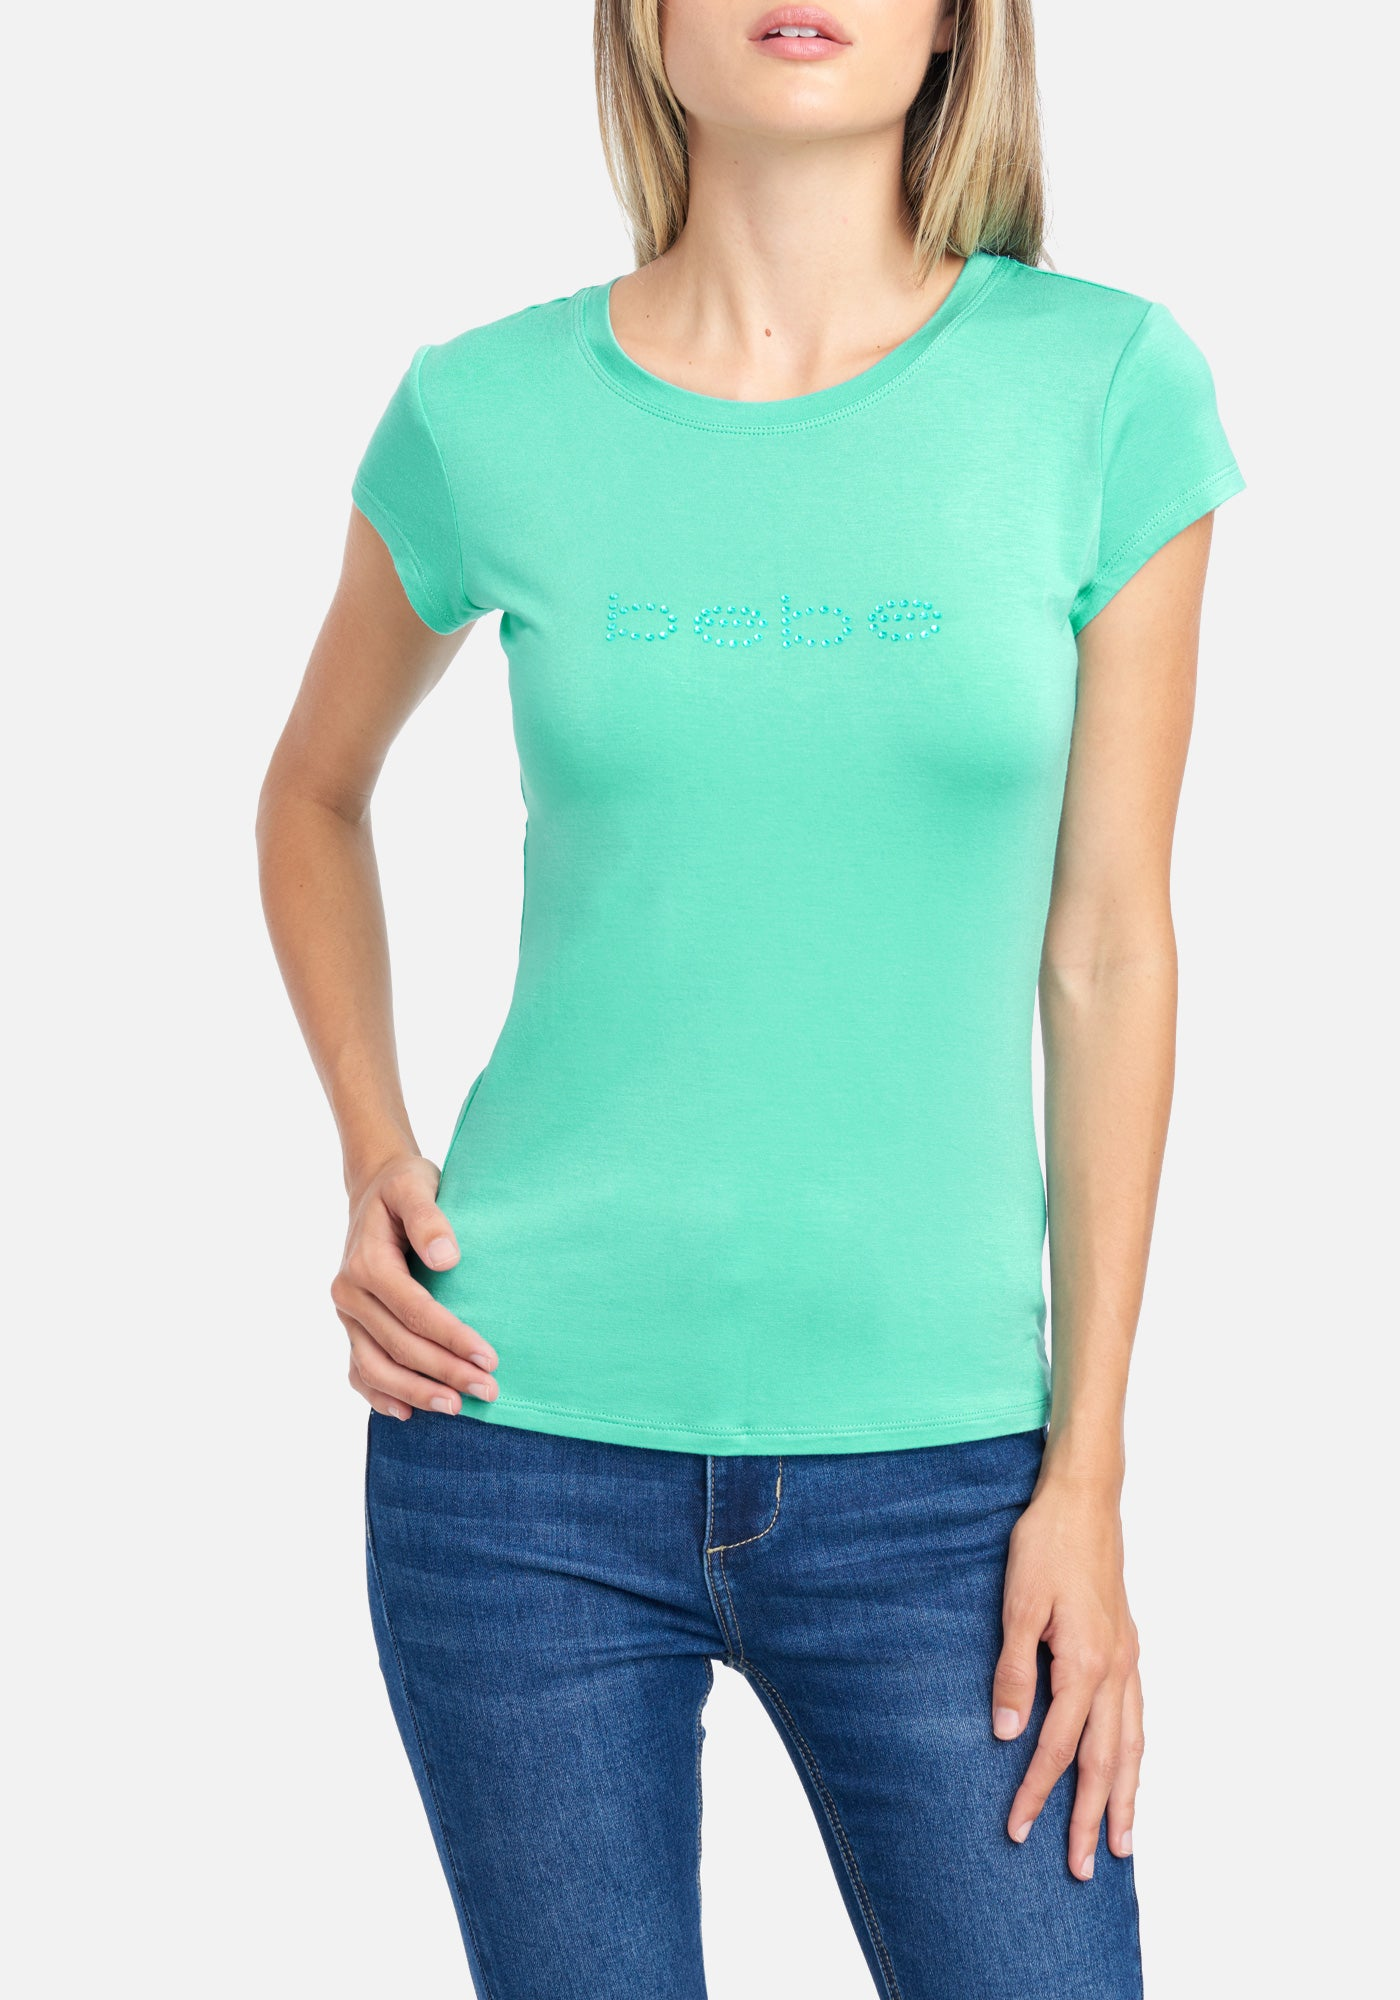 Image of Women's Bebe Logo Rhinestone Tee Shirt, Size Small in POOL BLUE Spandex